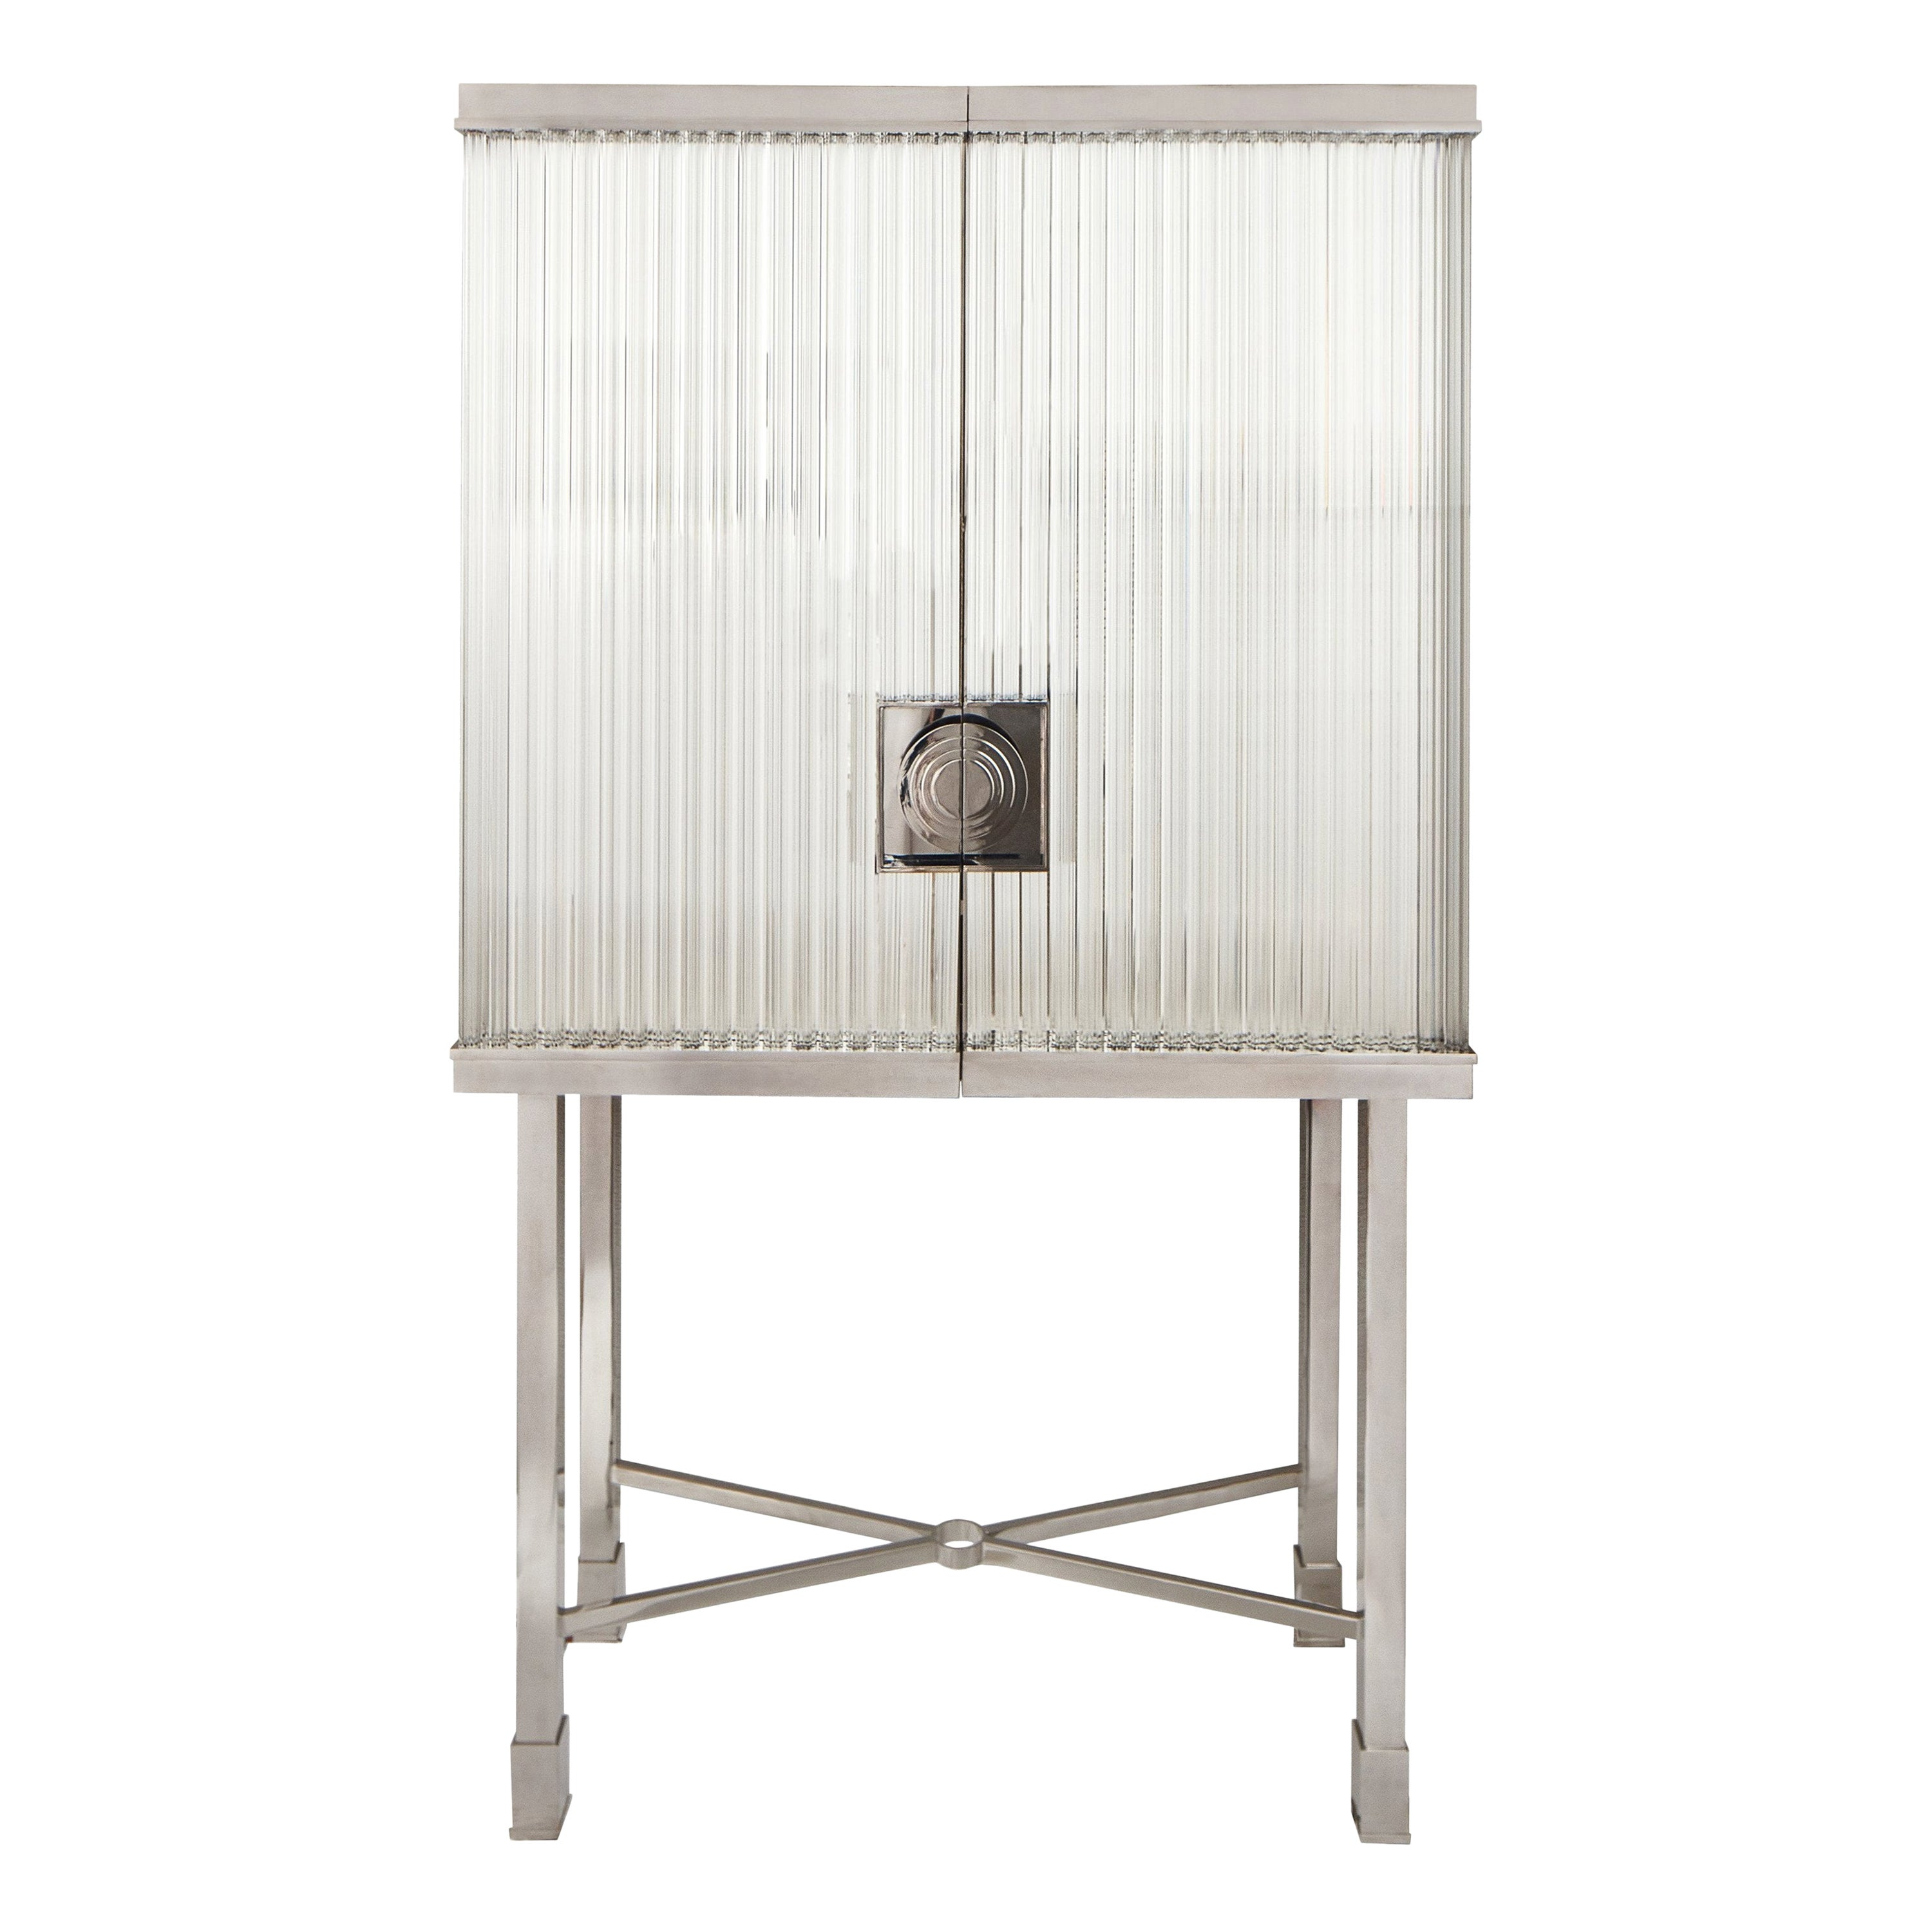 Modern Glass and Steel Dry Bar or Cocktail and Drinks Cabinet, Customizable